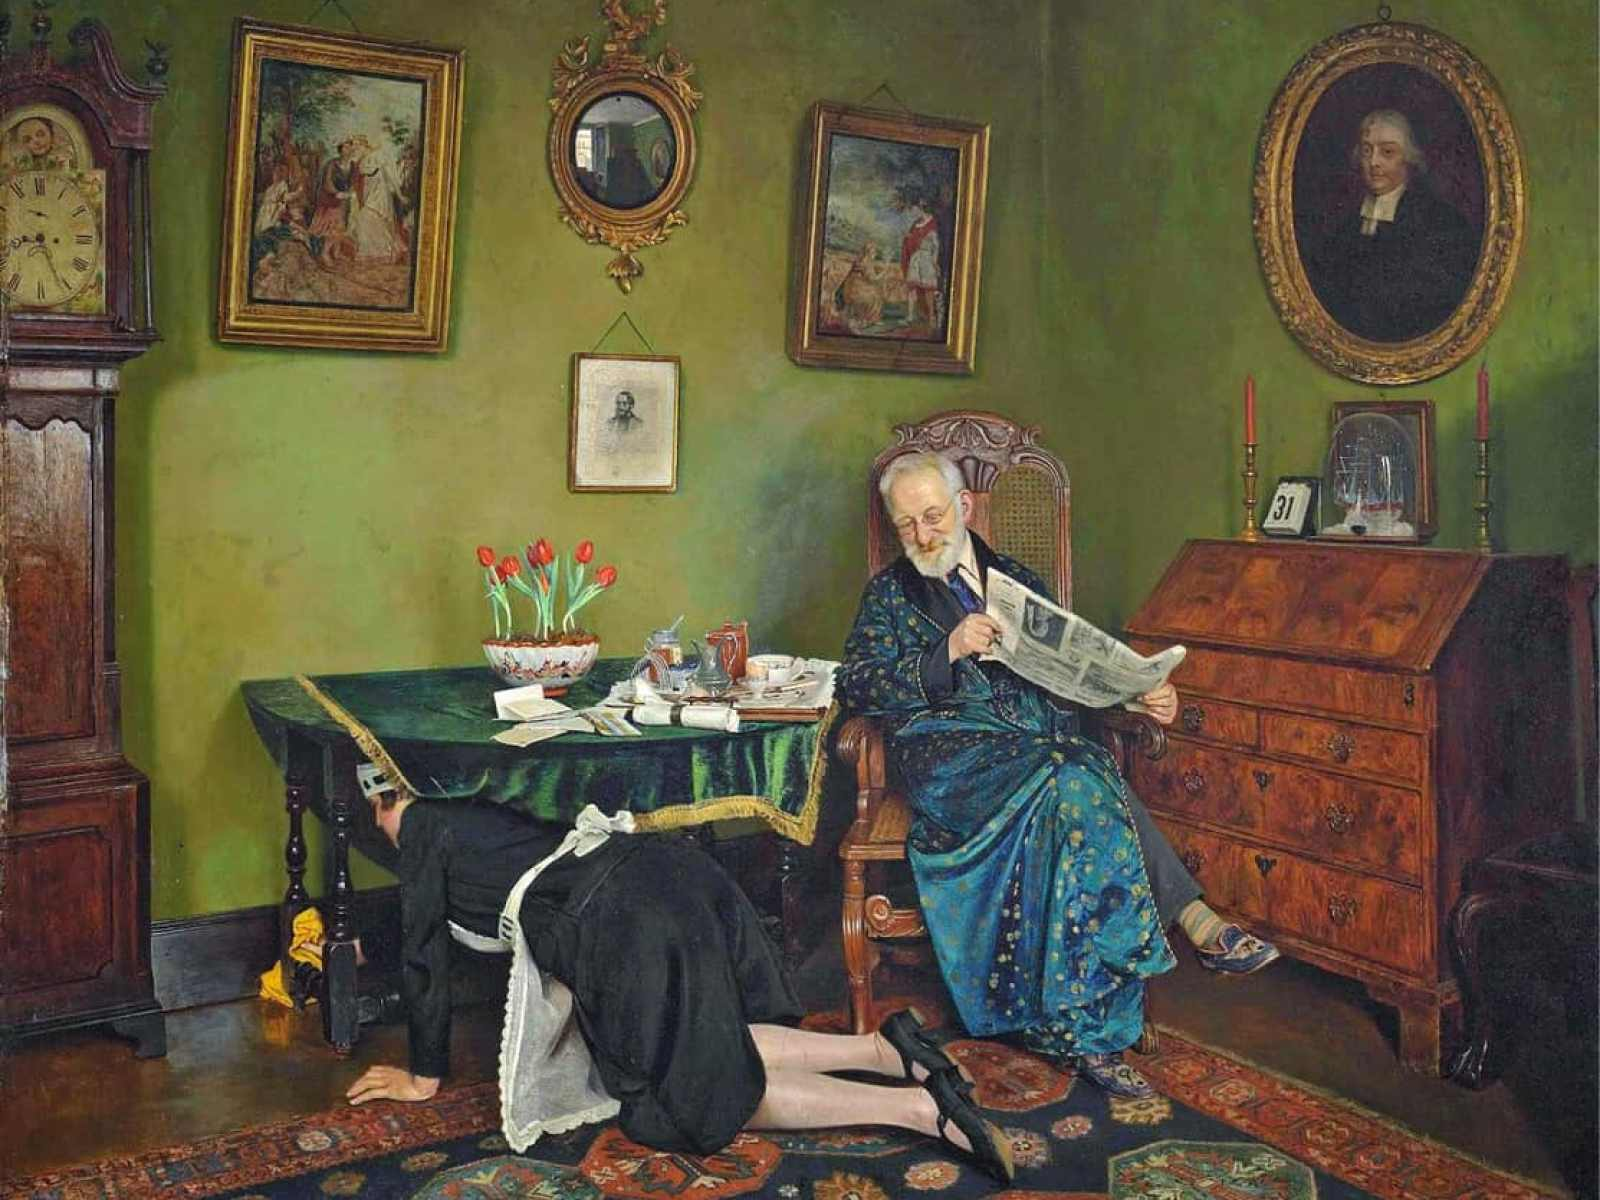 Charles Spencelayh - She Stoops to Conquer